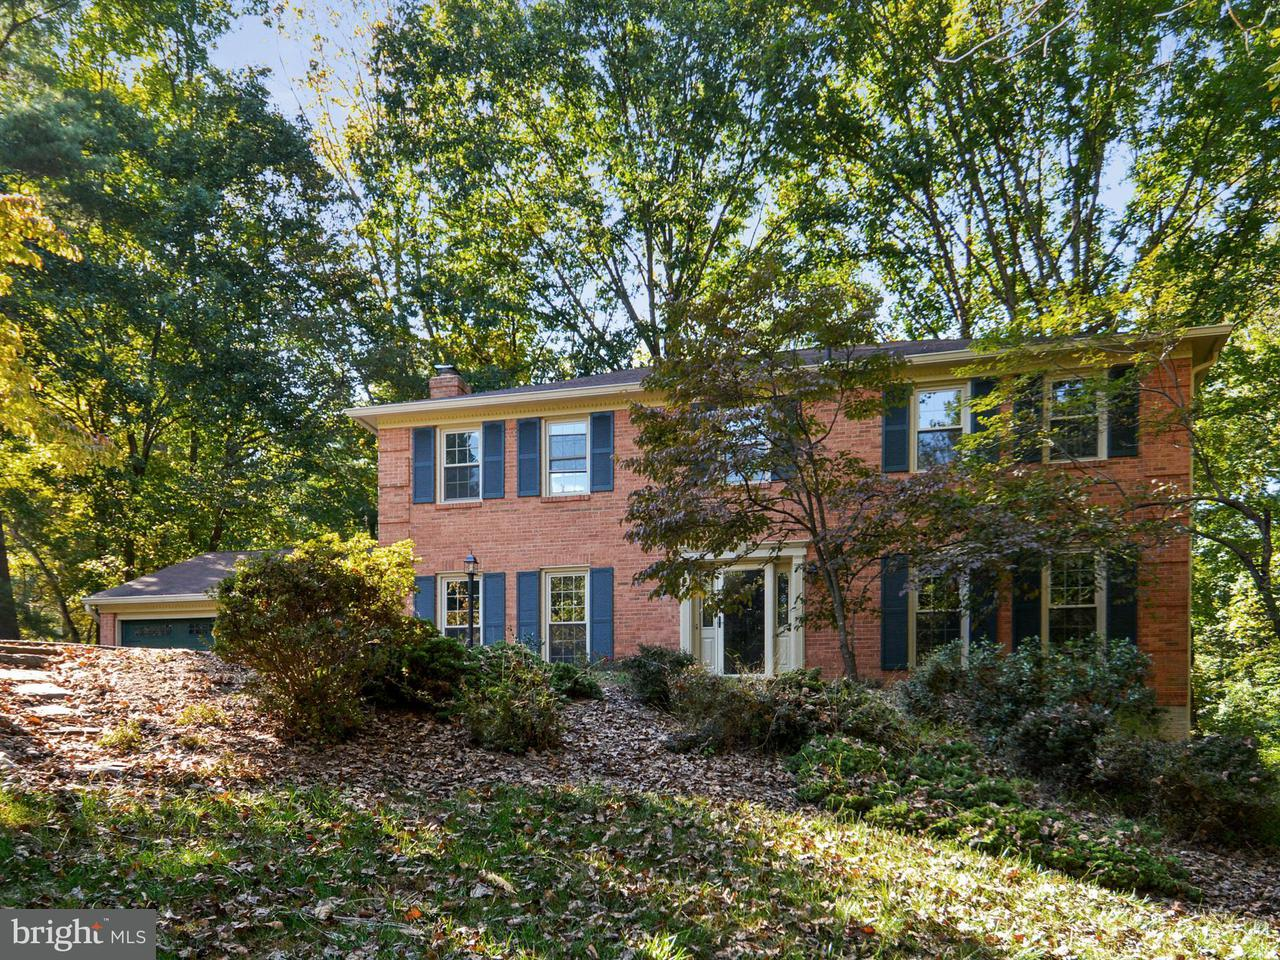 Single Family Home for Sale at 3300 MILLER HEIGHTS Road 3300 MILLER HEIGHTS Road Oakton, Virginia 22124 United States